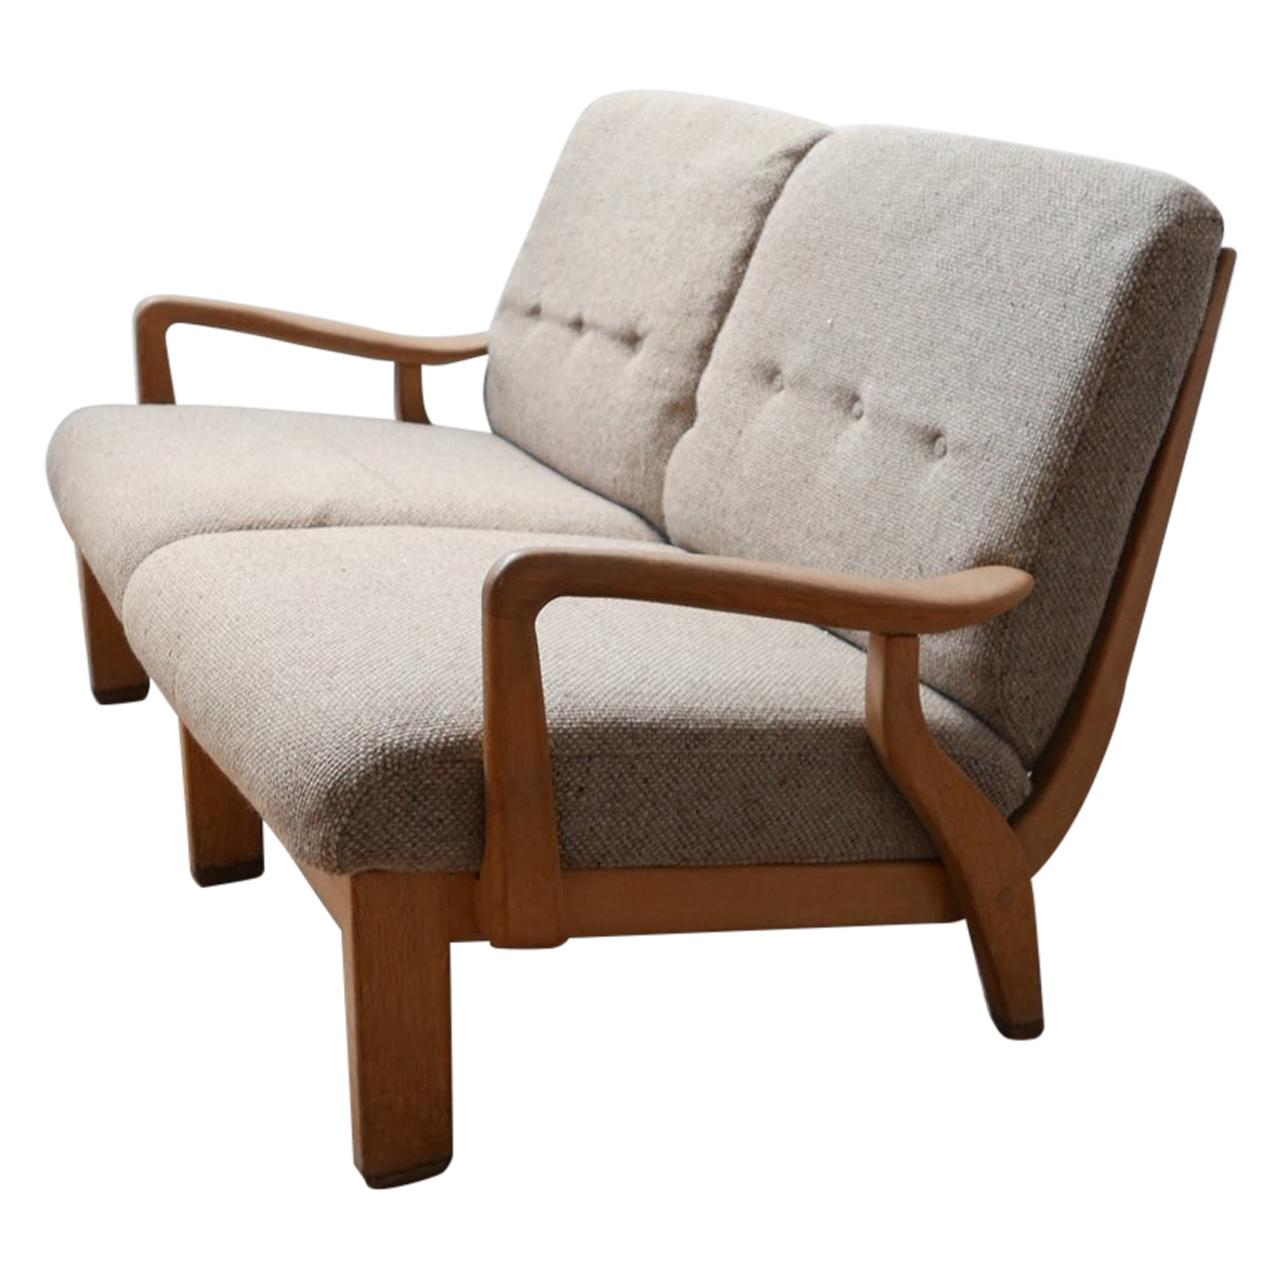 Guillerme et Chambron Mid-Century French Sofa